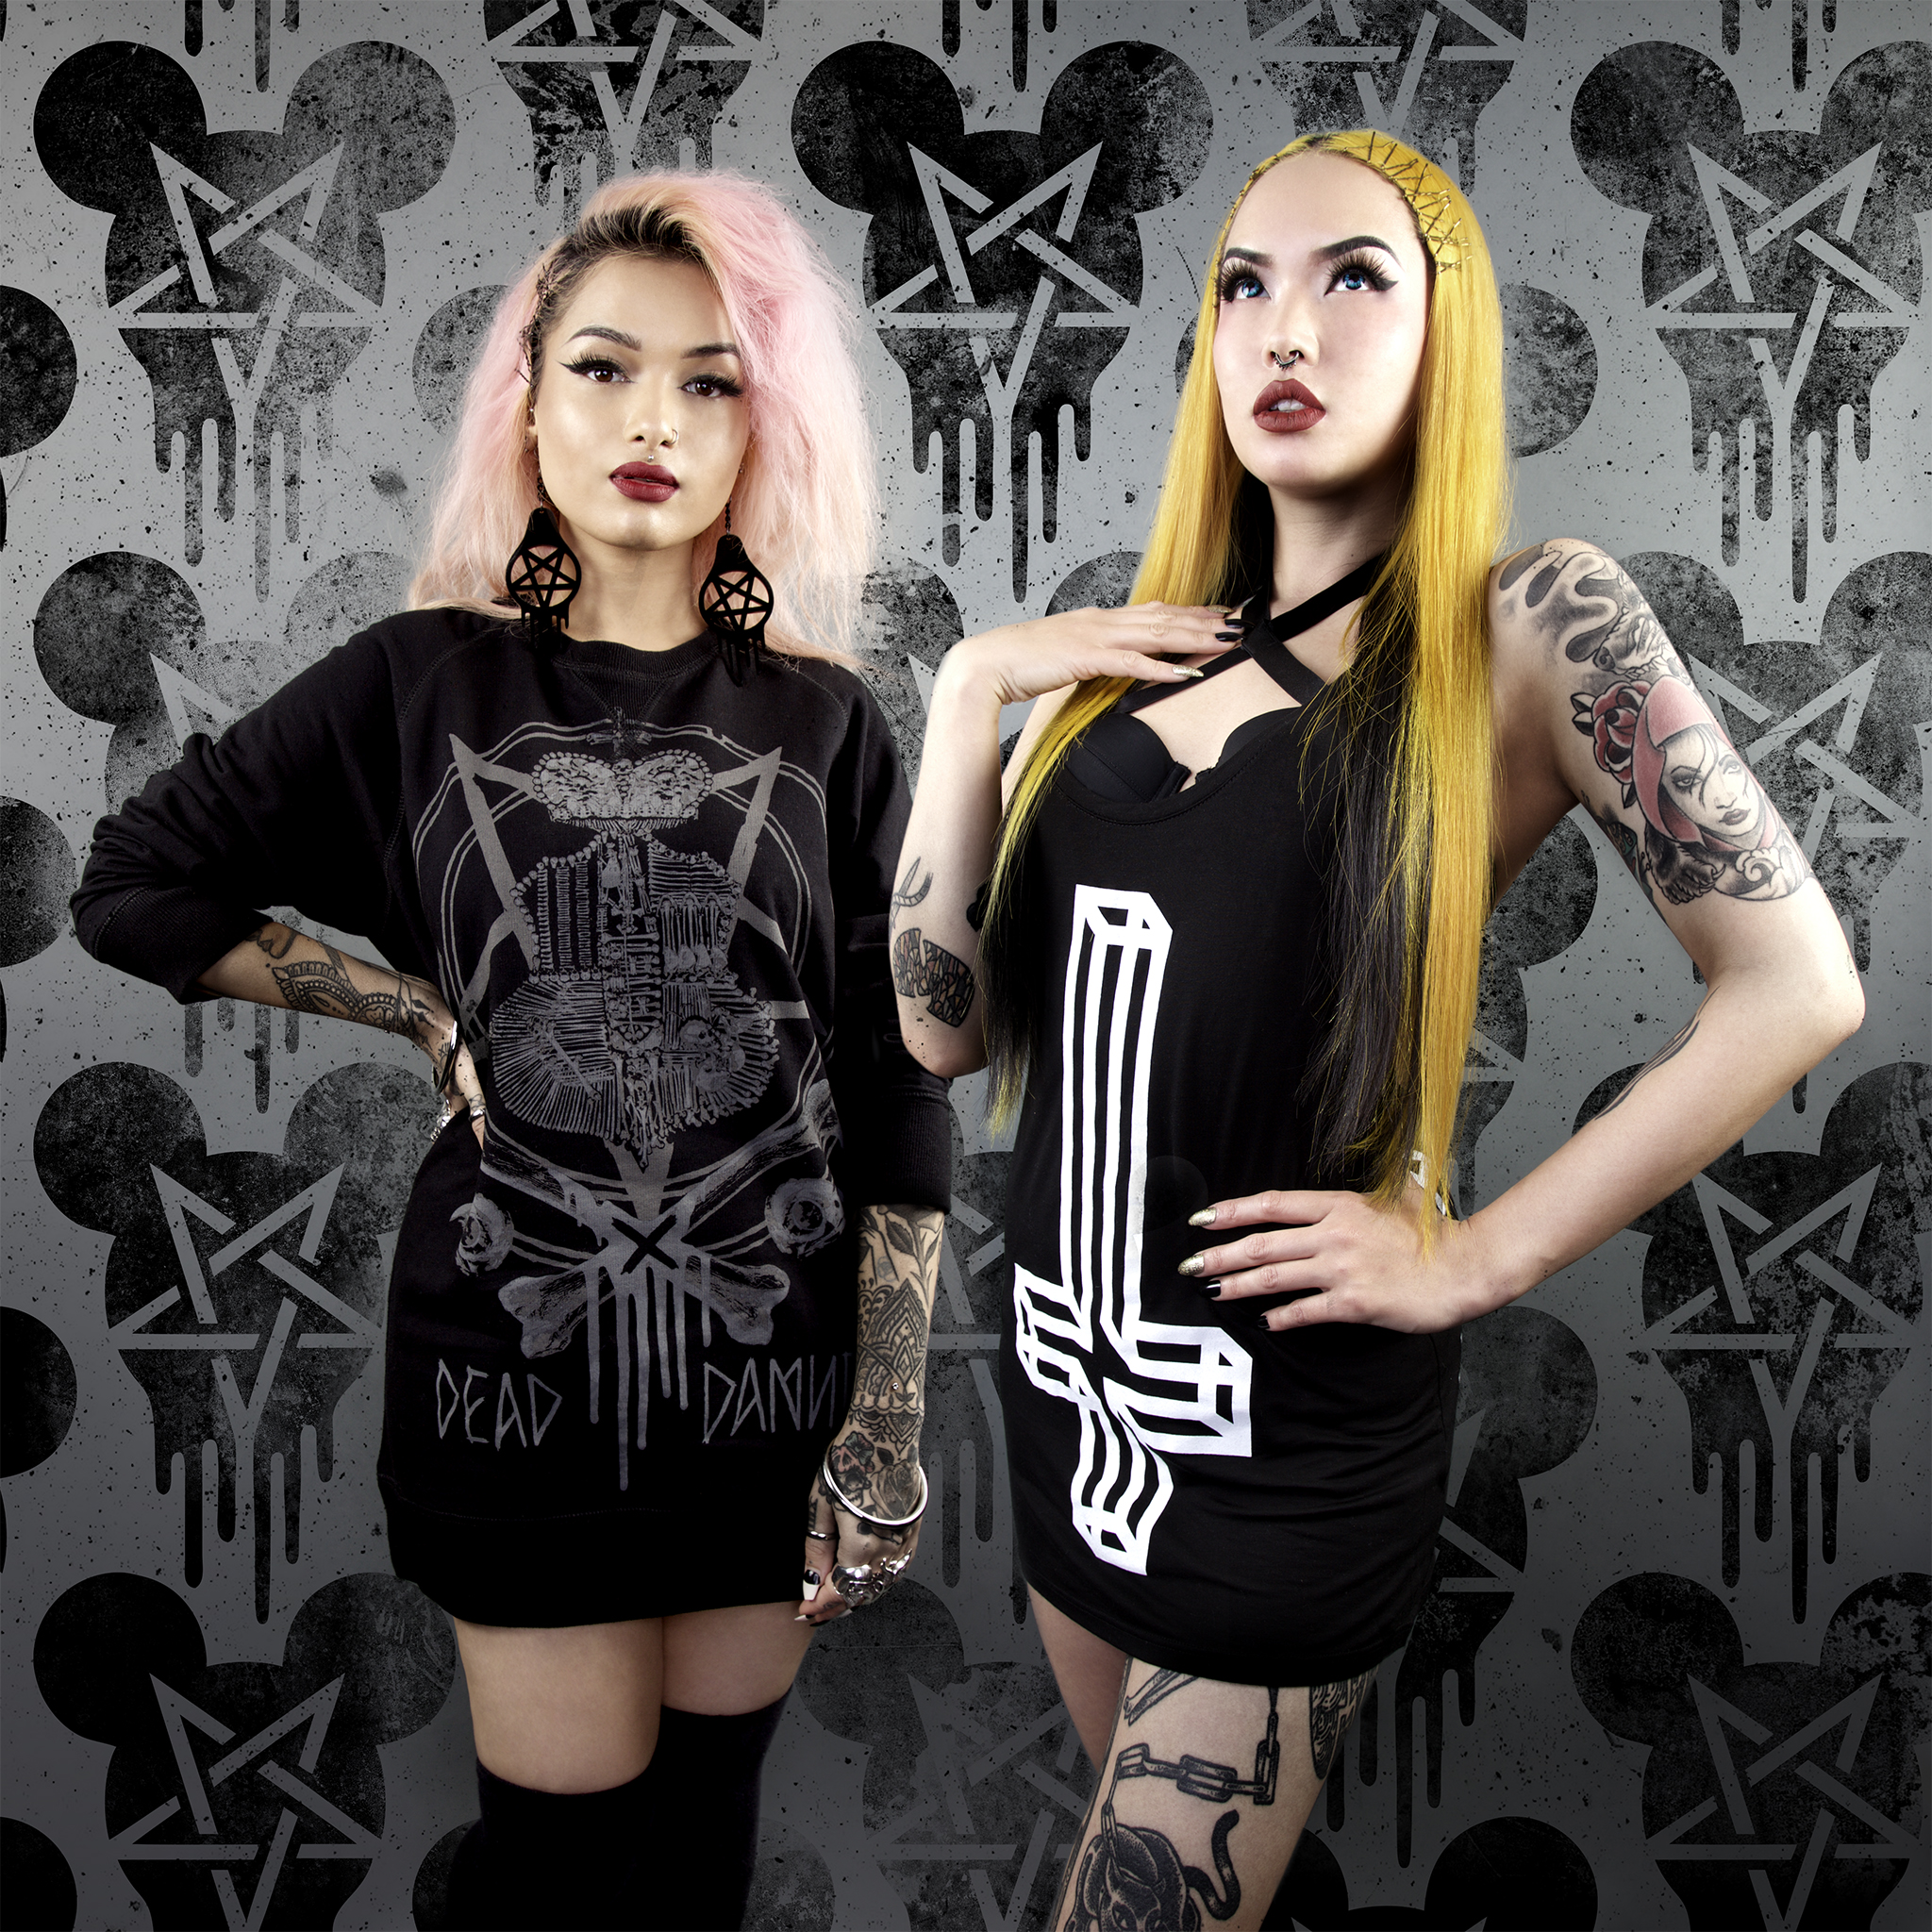 - Shop Amelia Arsenic's Apparel store featuring Australian made macabre designs.